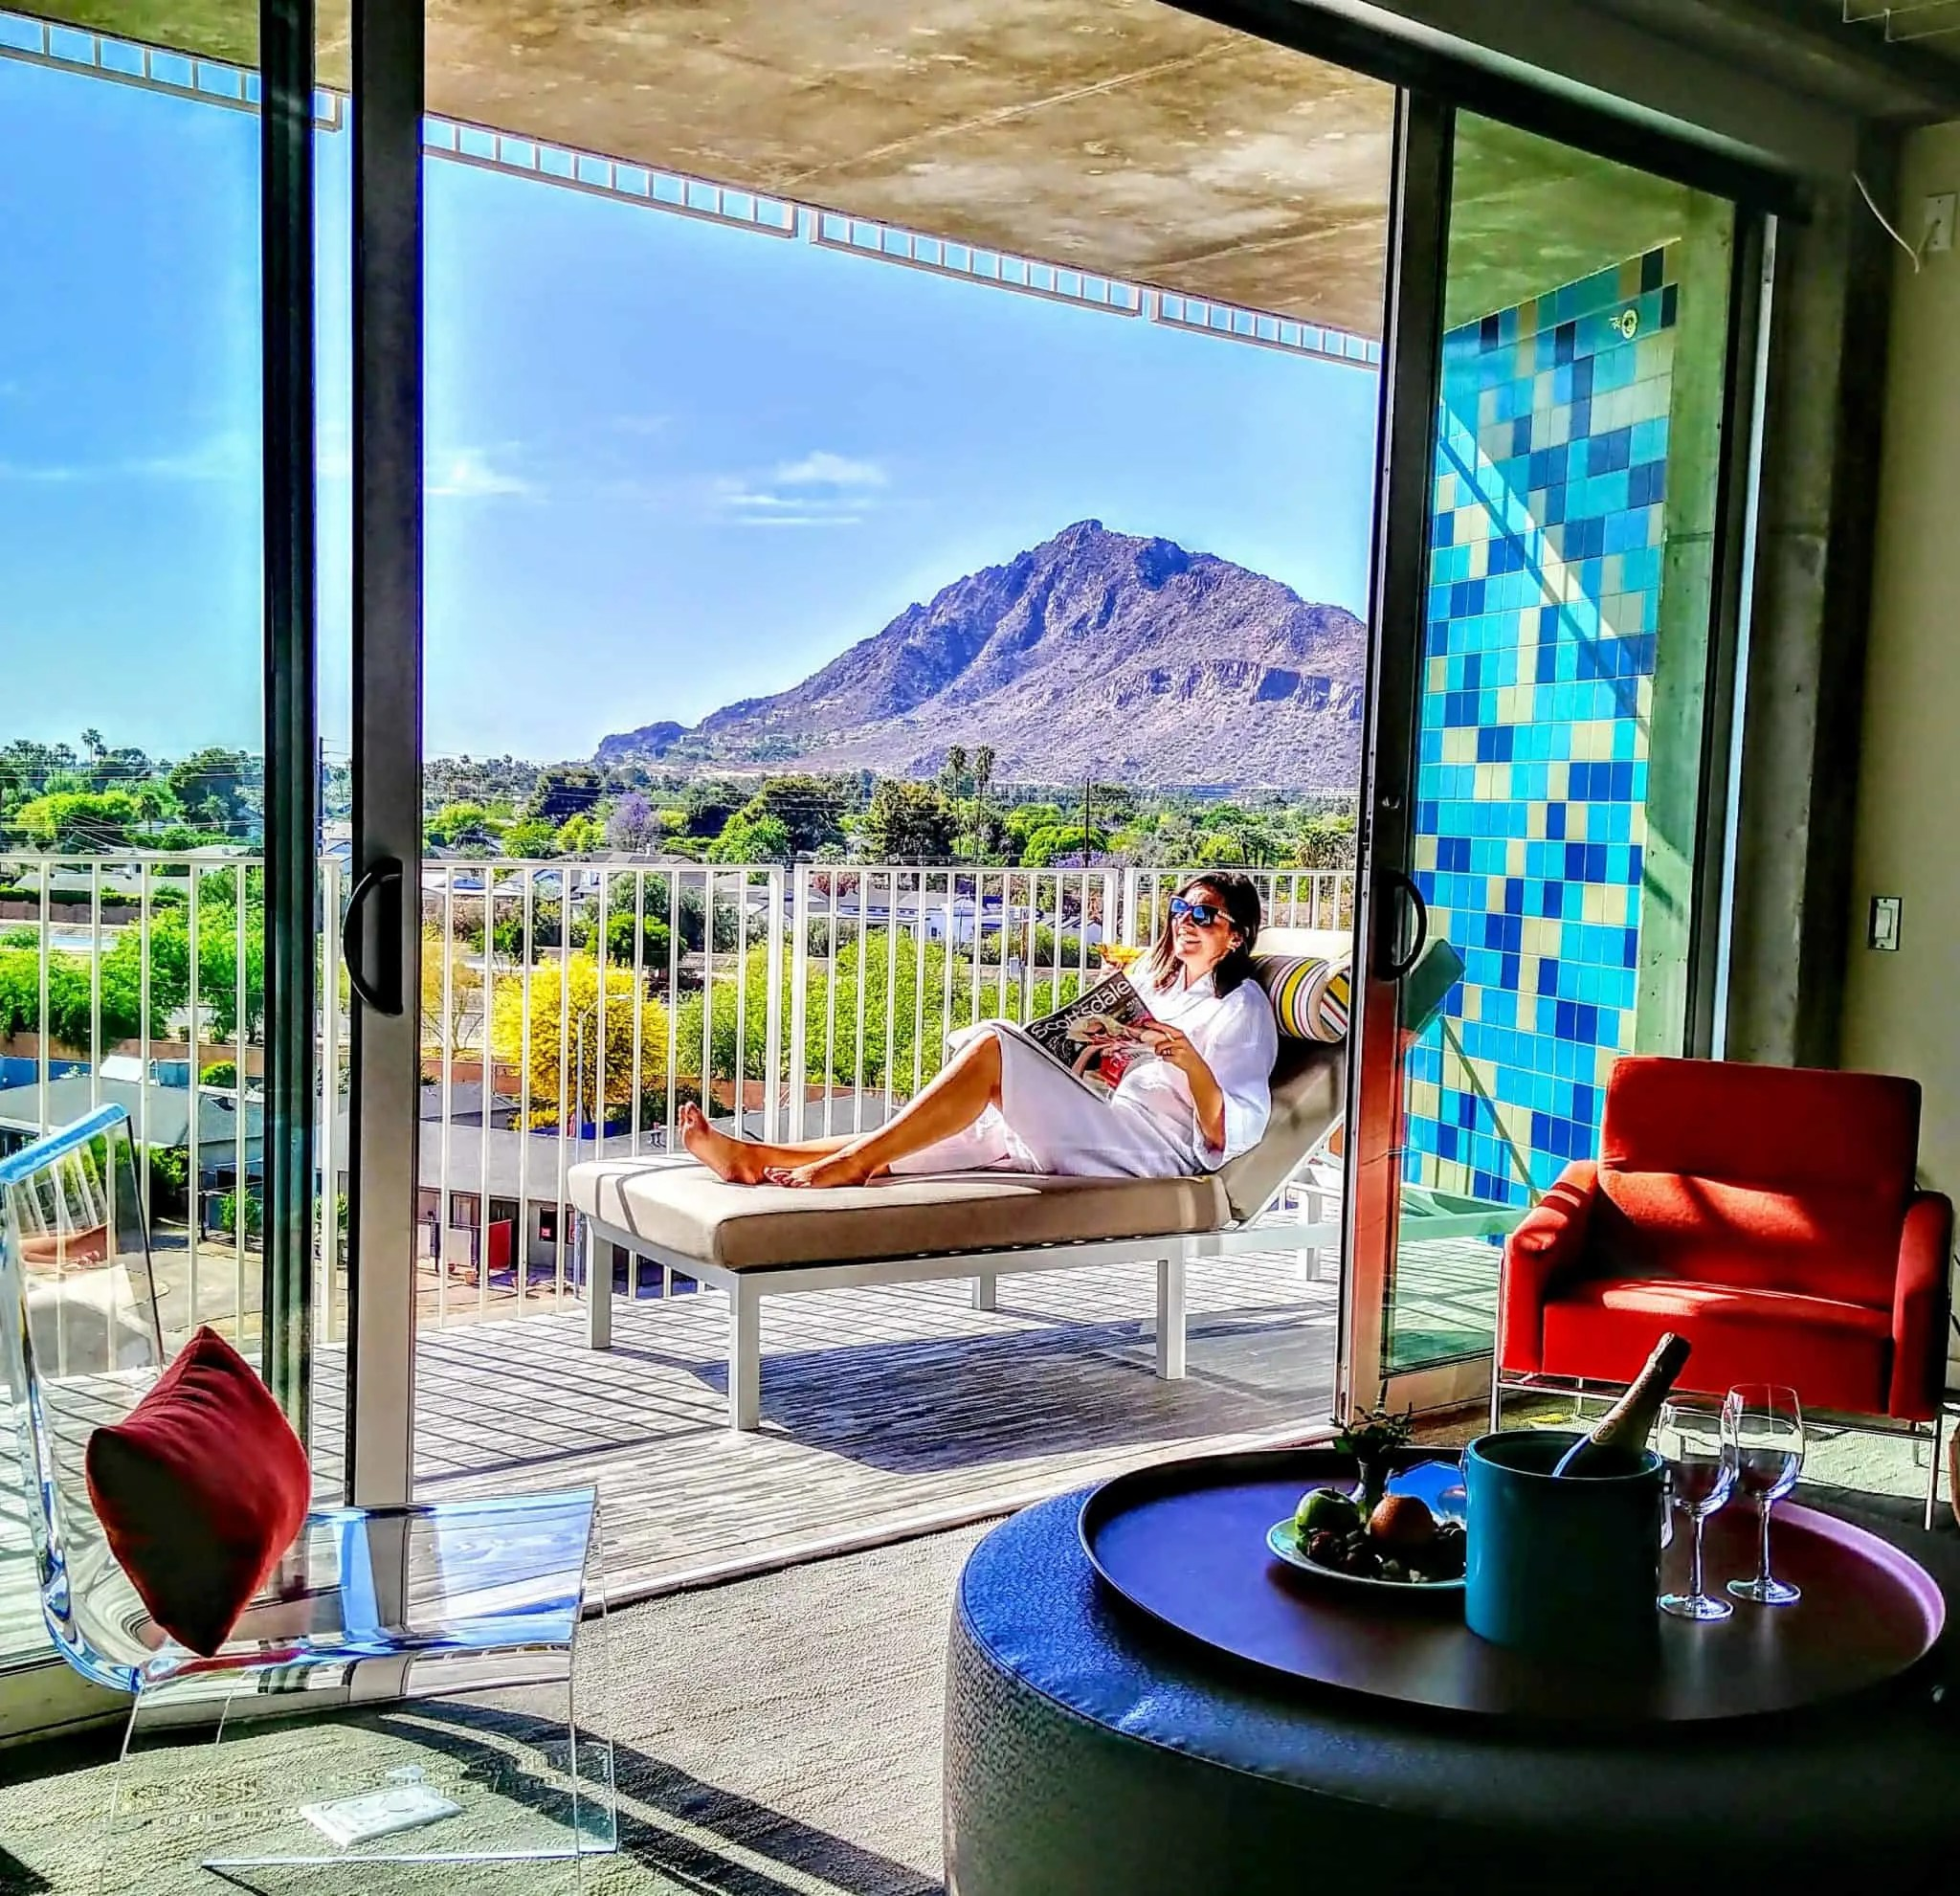 hotel valley ho balcony suite mountain view scottsdale Arizona blue tiles red sofa suite